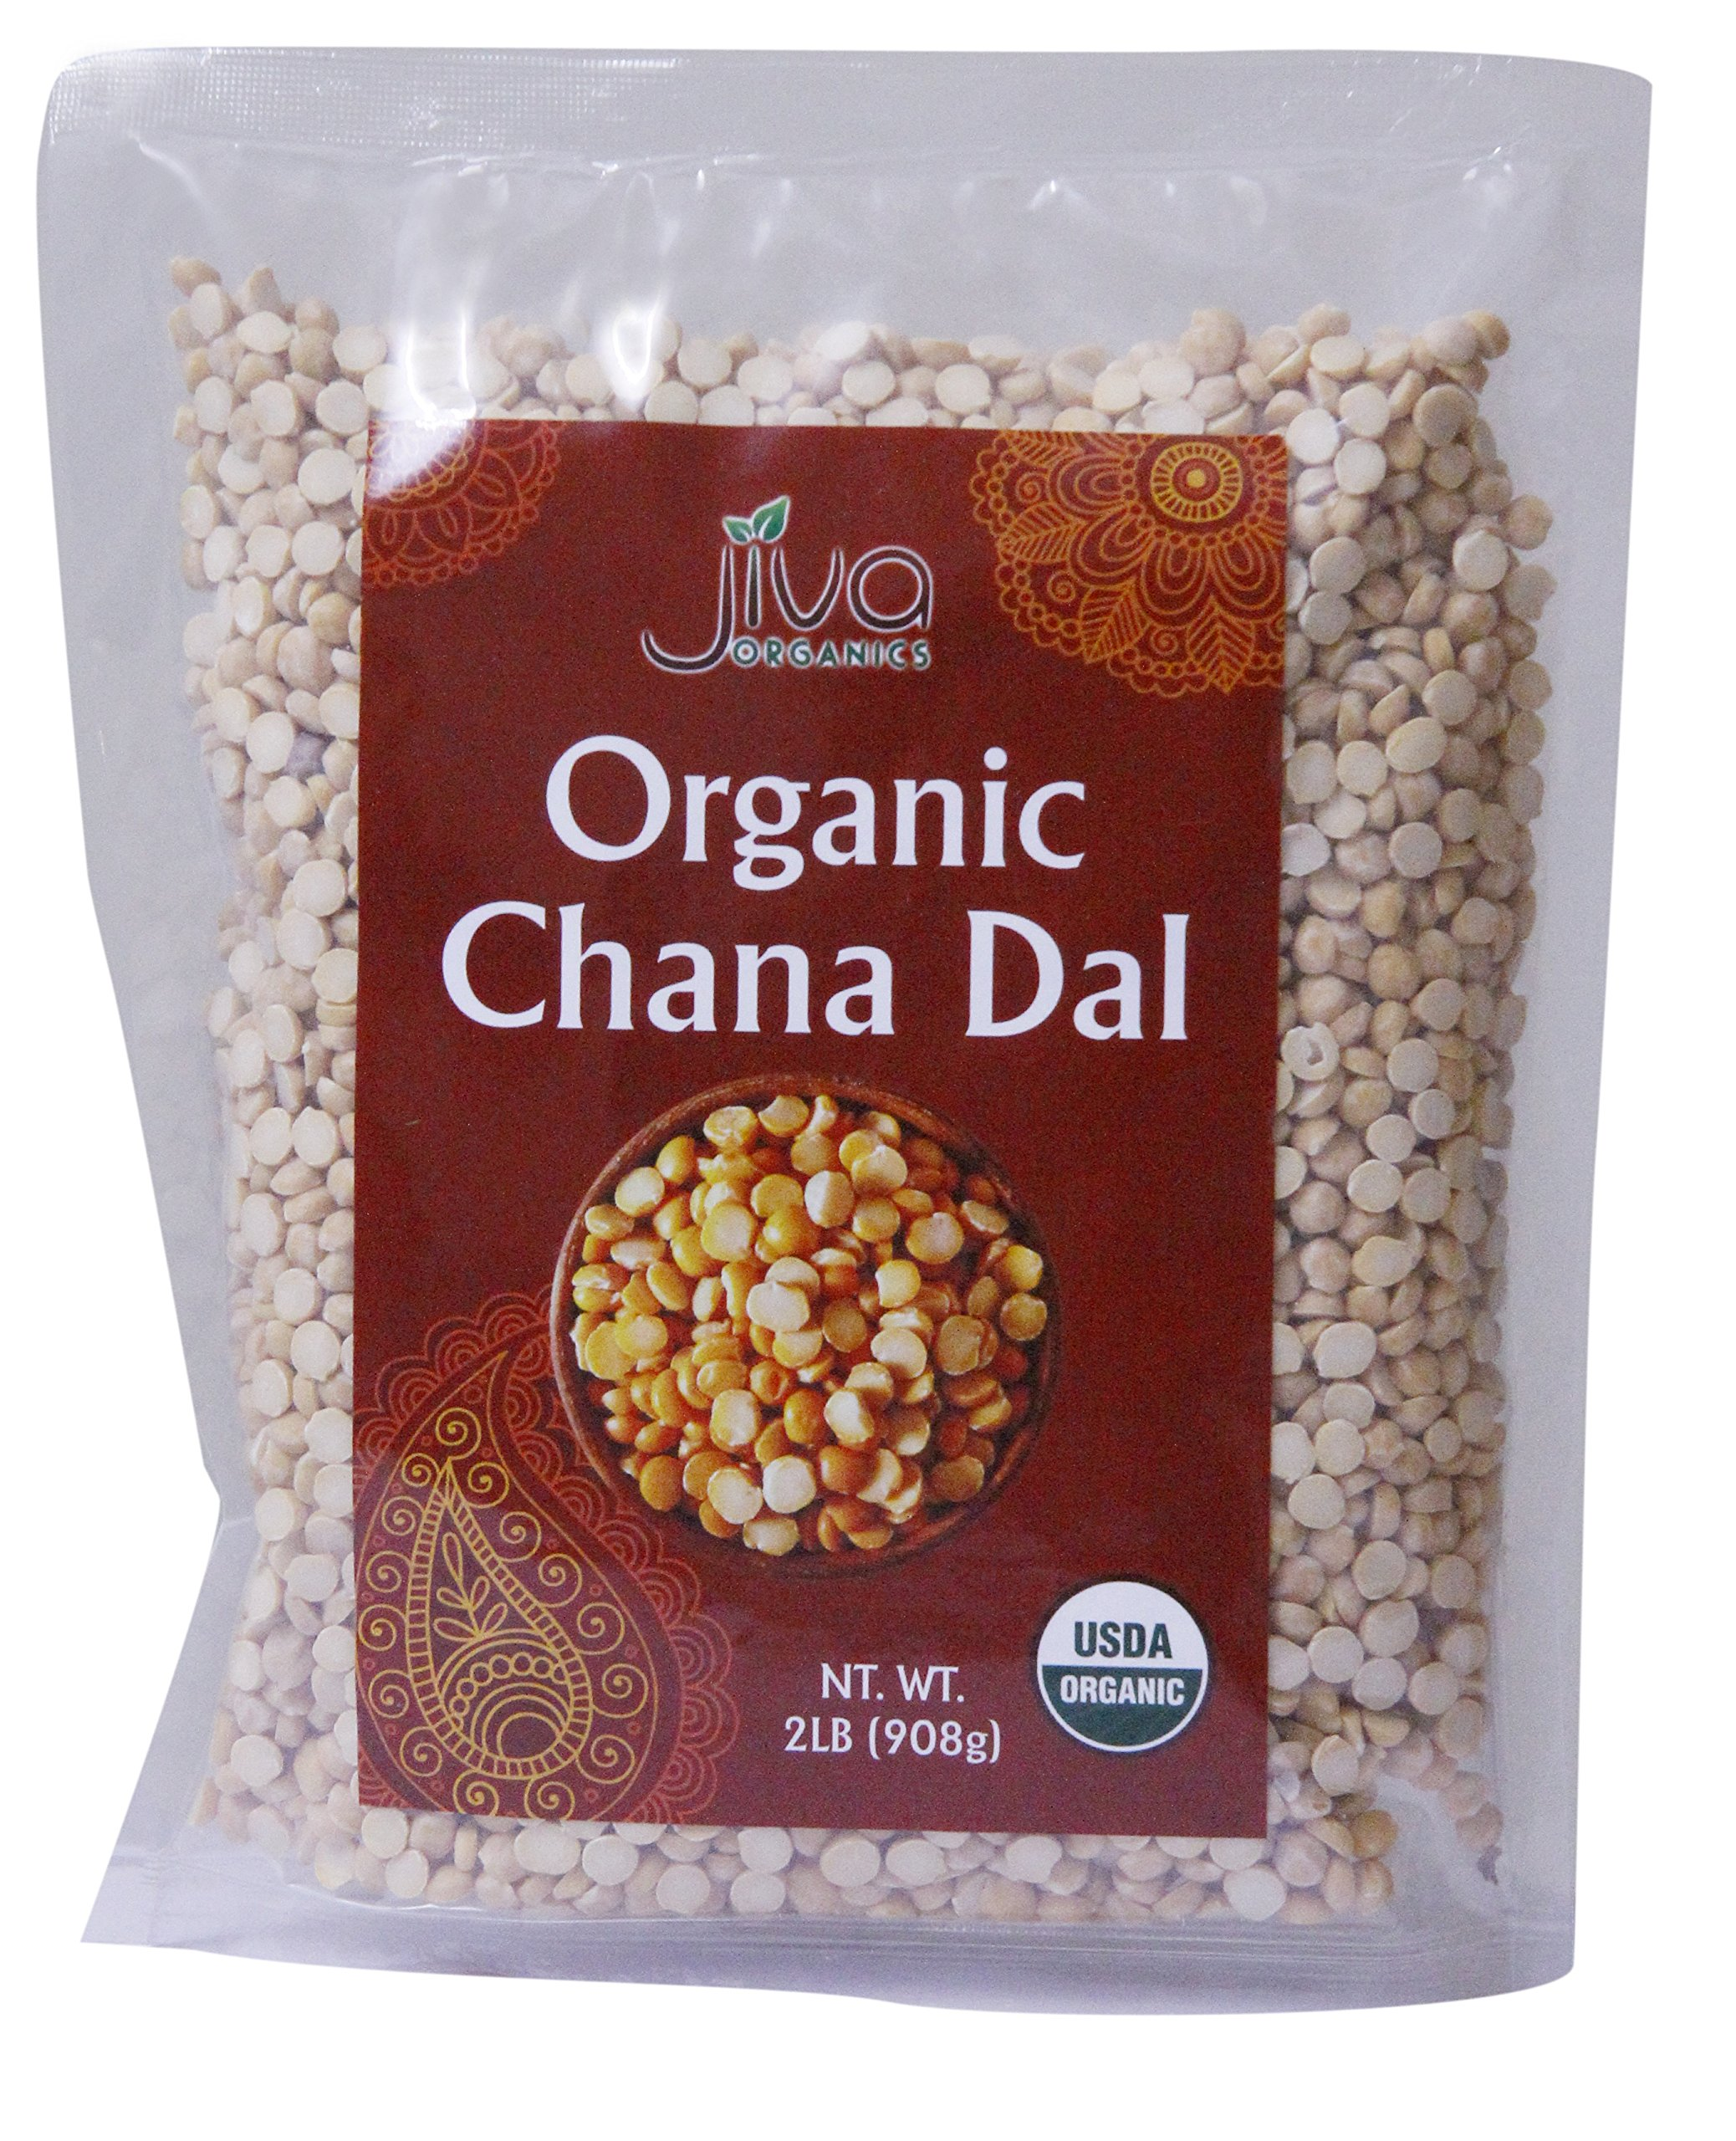 Jiva USDA Organic Chana Dal Beans - 2 Pound Bag